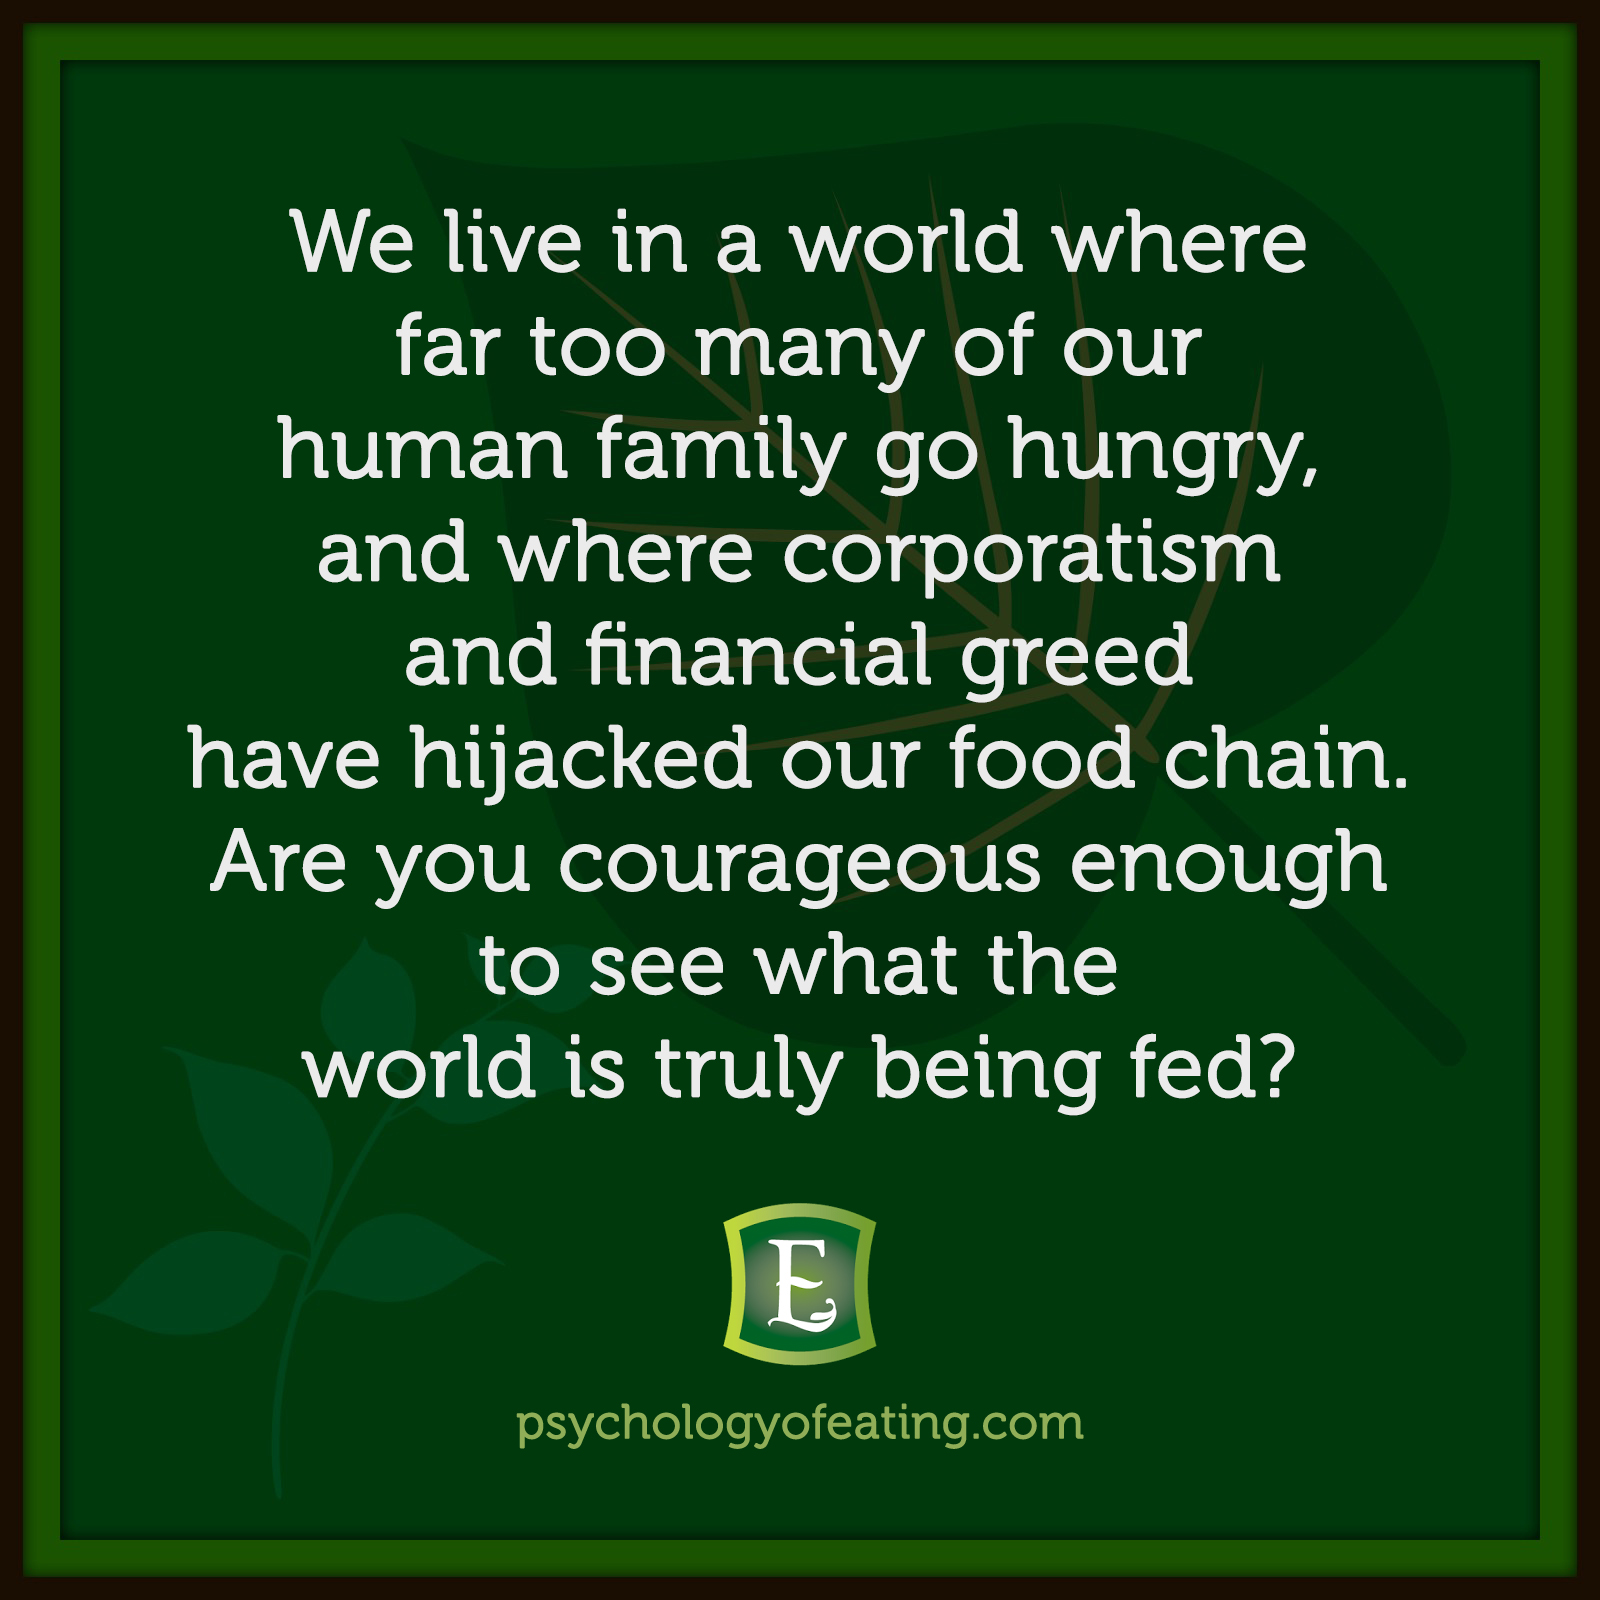 We live in a world where far too many of our human family go hungry, and where corporatism and financial greed have hijacked our food chain. Are you courageous enough to see what the world is truly being fed? #health #nutrition #eatingpsychology #IPE